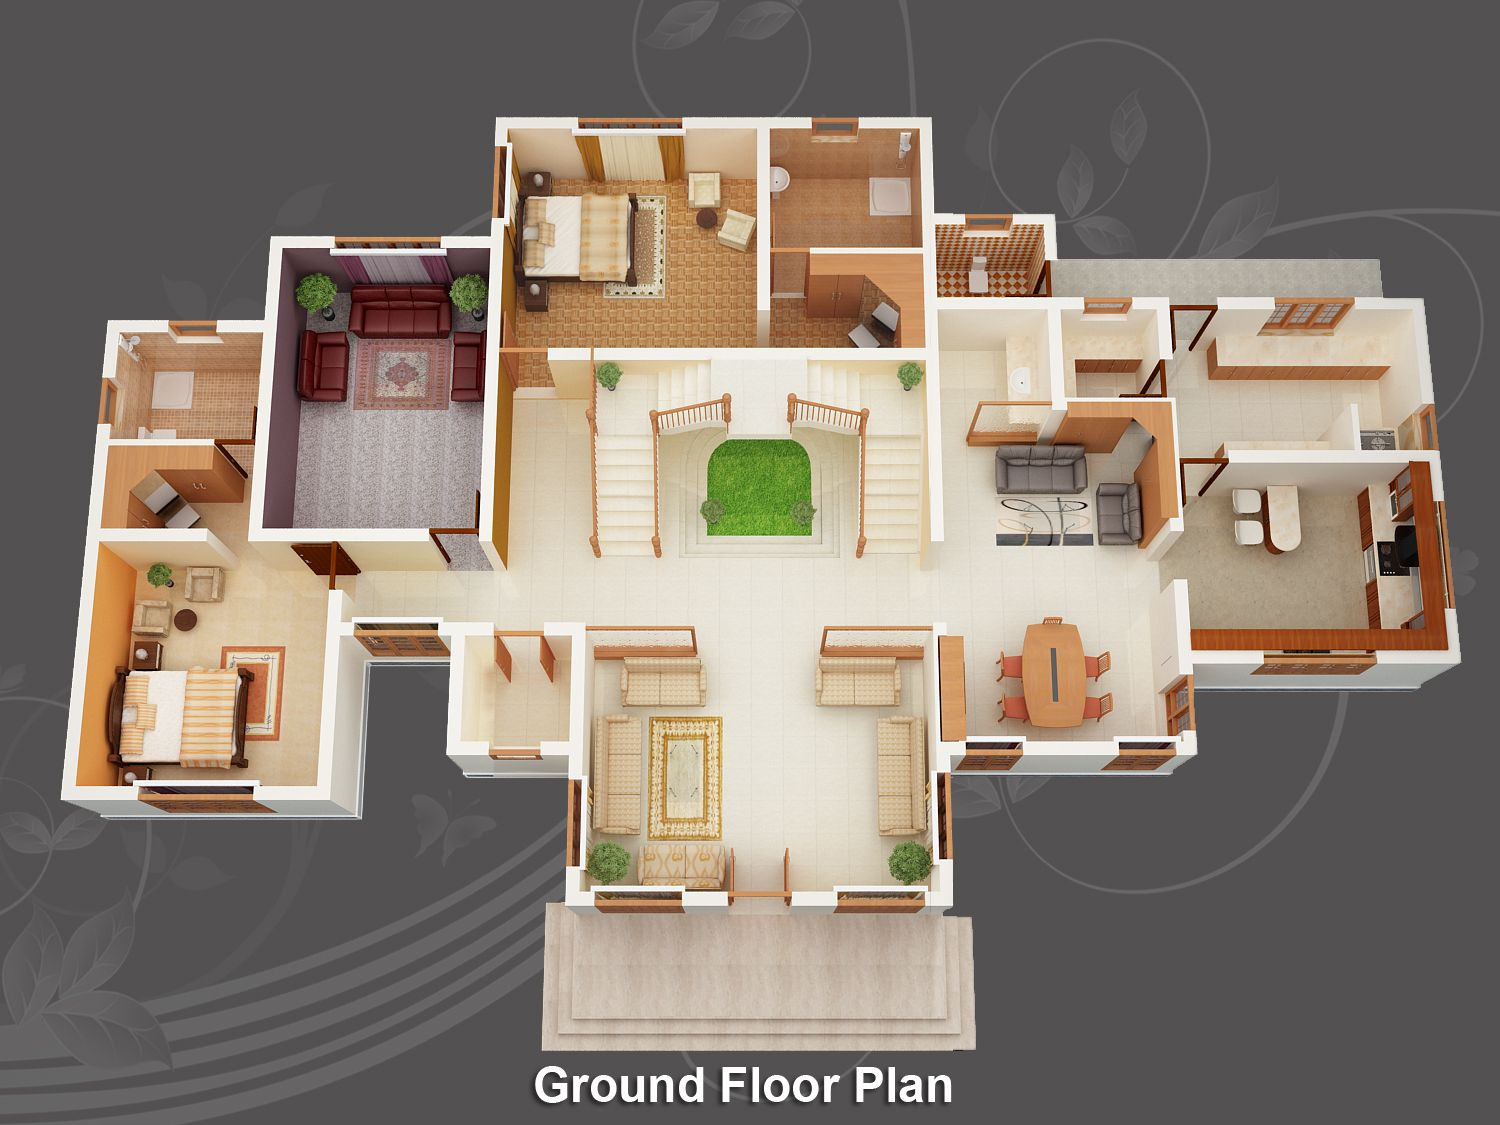 Image for free home design plans 3d wallpaper desktop for Small house plan design 3d